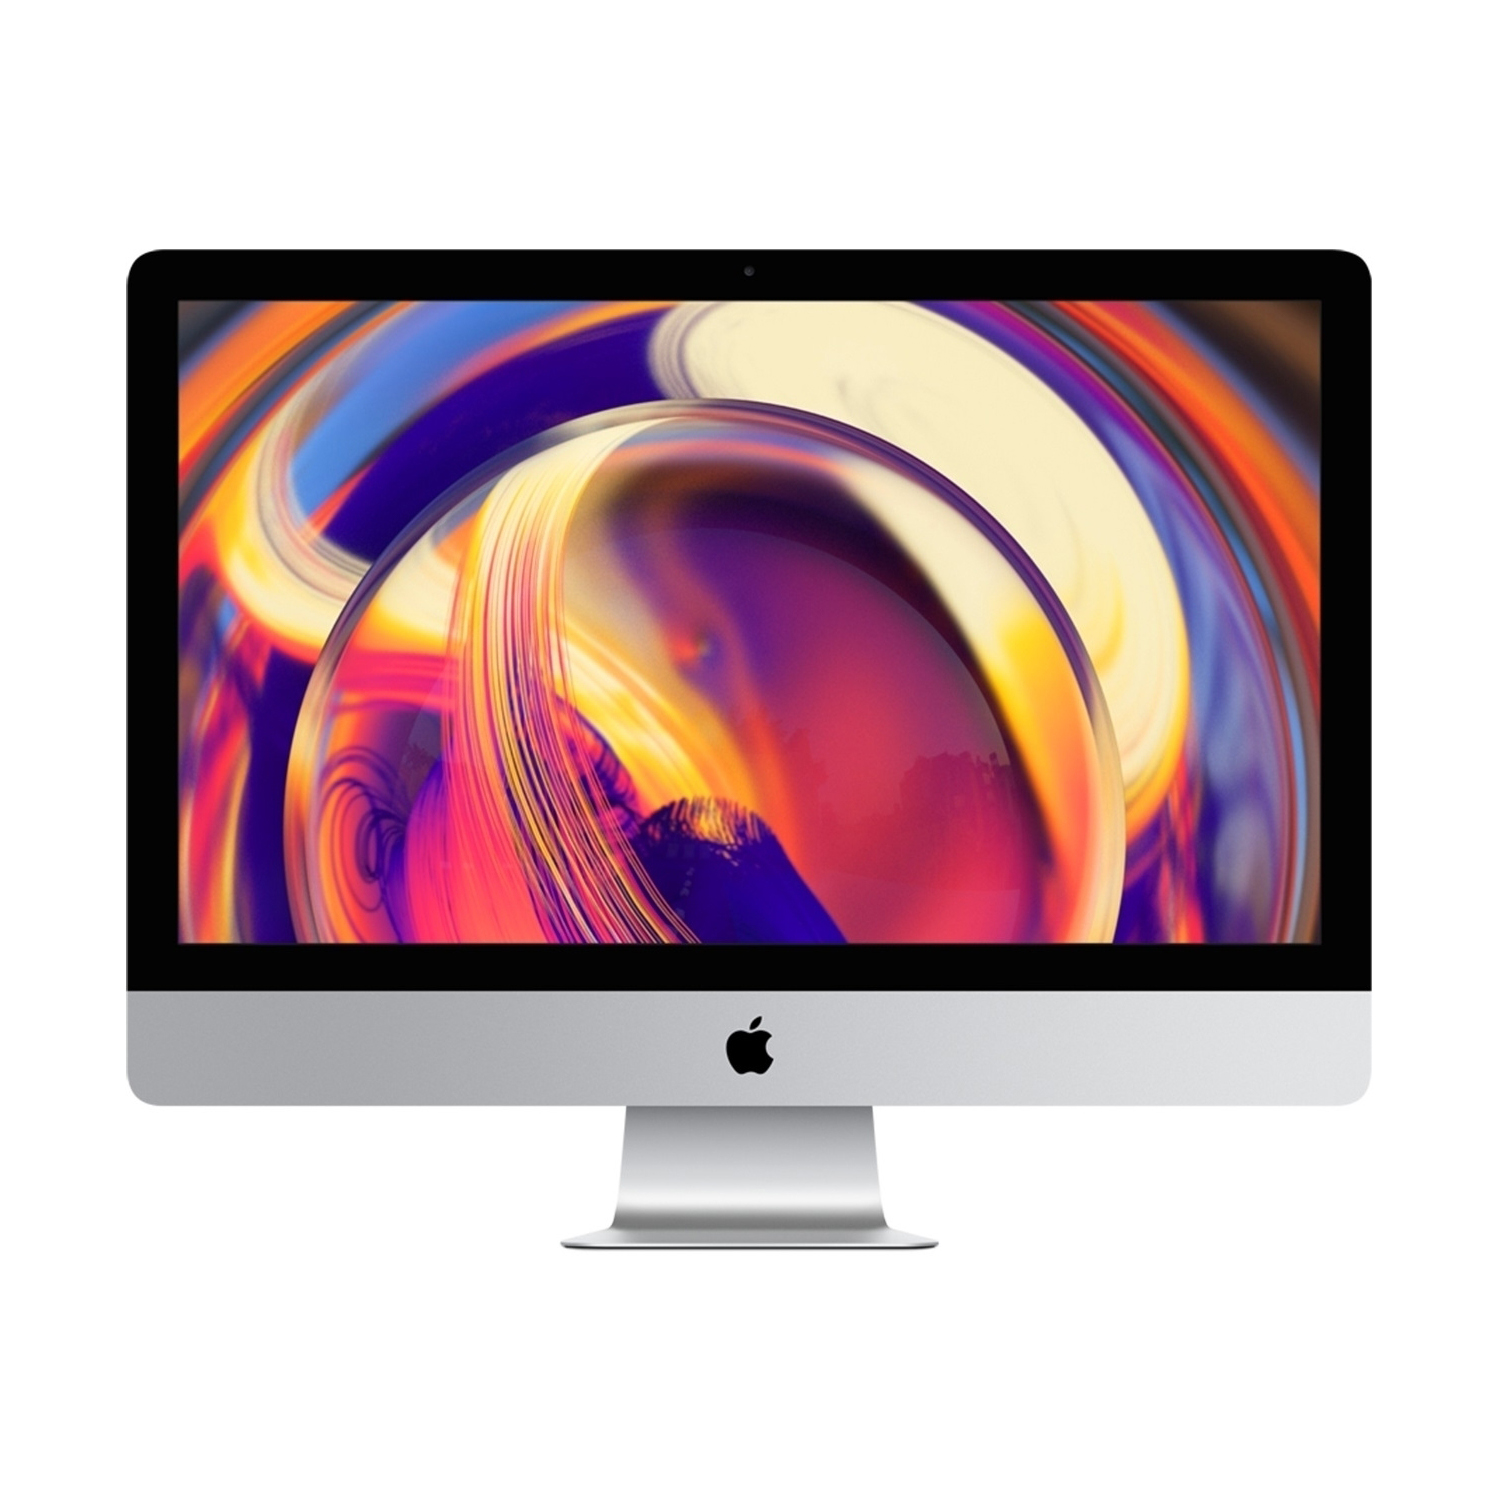 Image for Apple iMac 27inch 8th Generation MacOS 5K Display i5 Processor 3.0GHz 8GB Ref MRQY2B/A